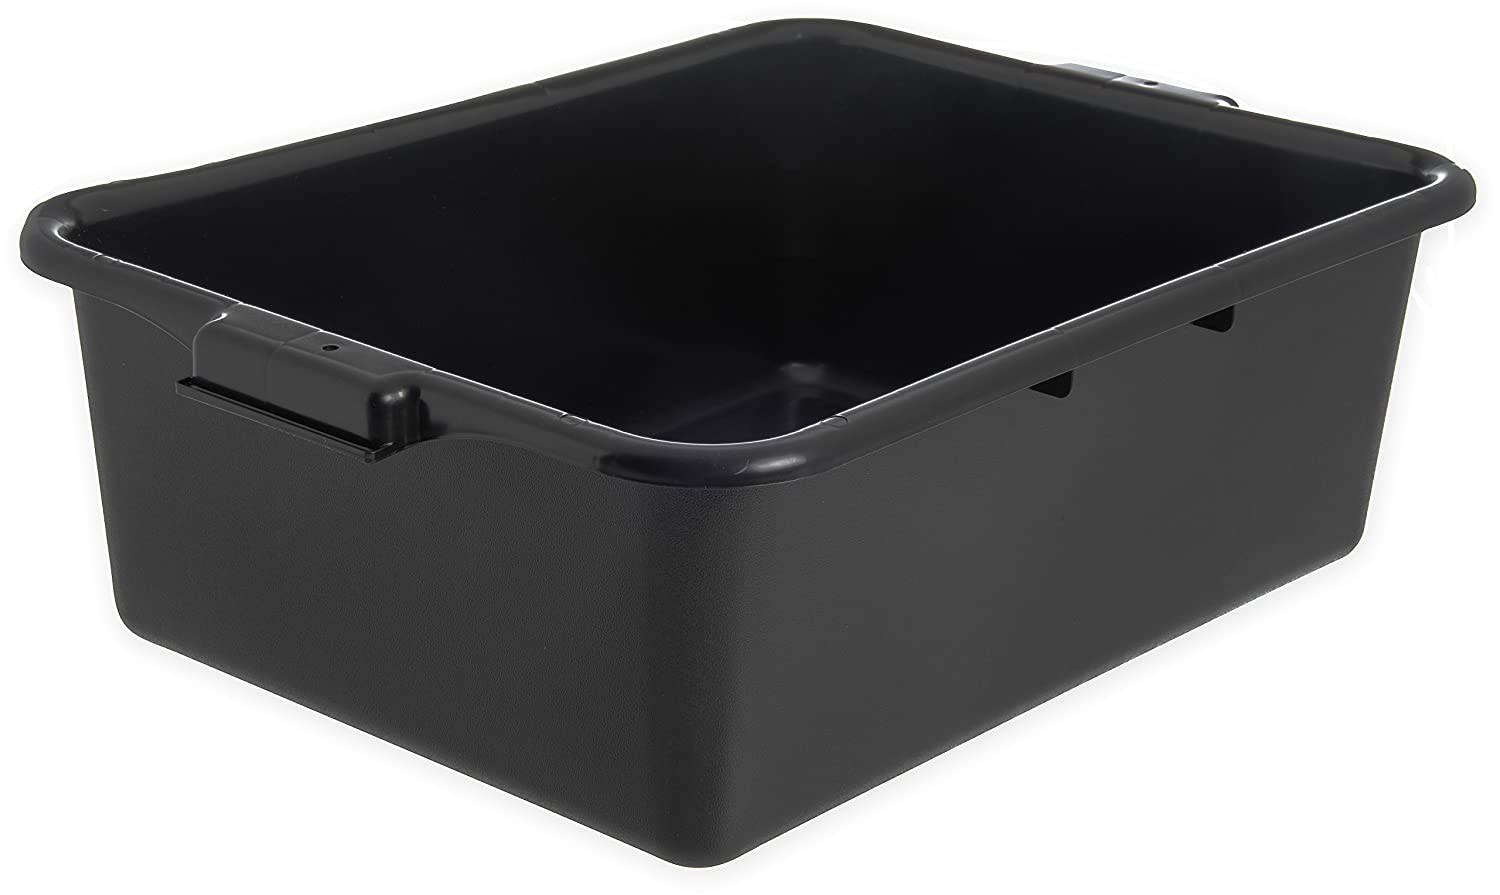 Carlisle N4401109 Comfort Curve Ergonomic Wash Basin Tote Box, 7' Deep, Green (Pack of 12)